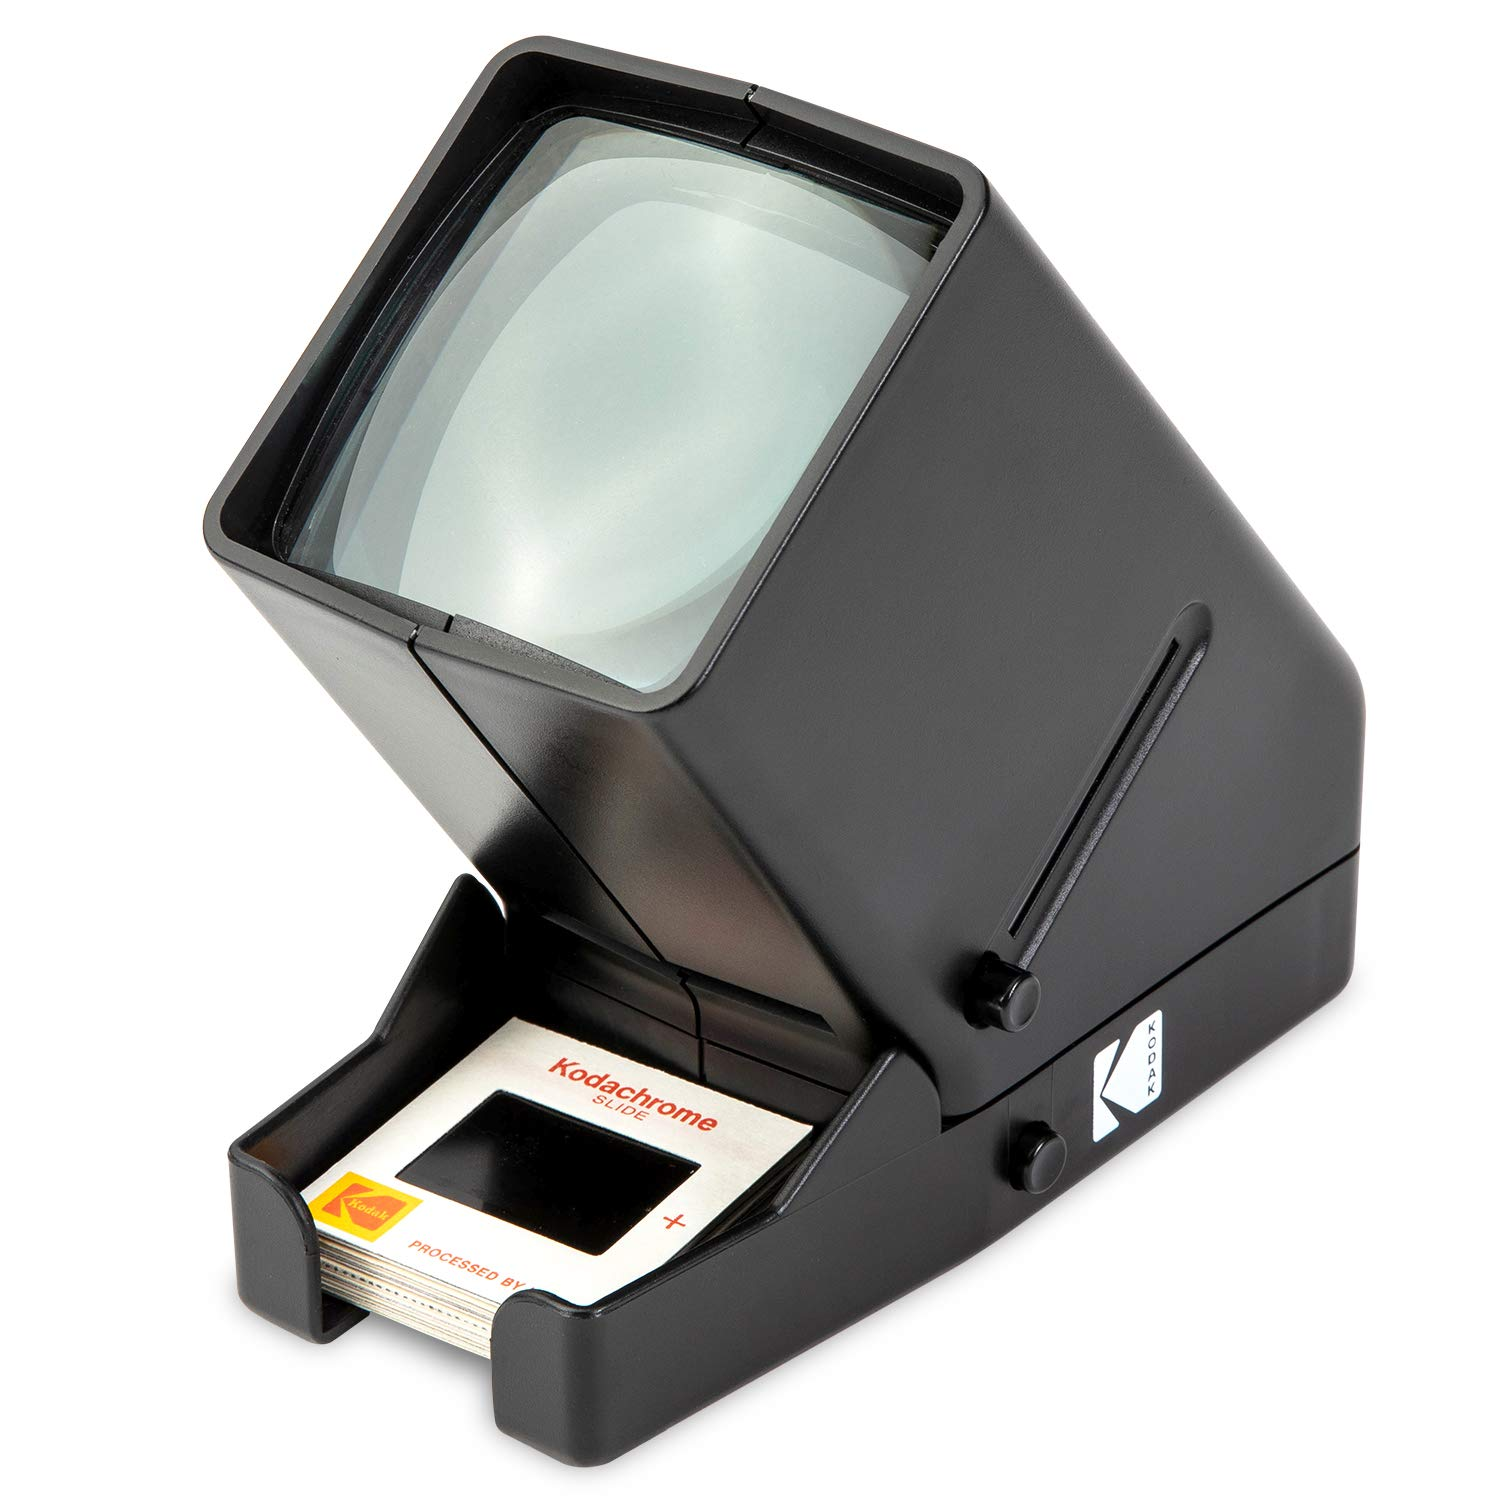 KODAK 35mm Slide and Film Viewer - Battery Operation, 3X Magnification, LED Lighted Viewing - for 35mm Slides & Film Negatives by KODAK